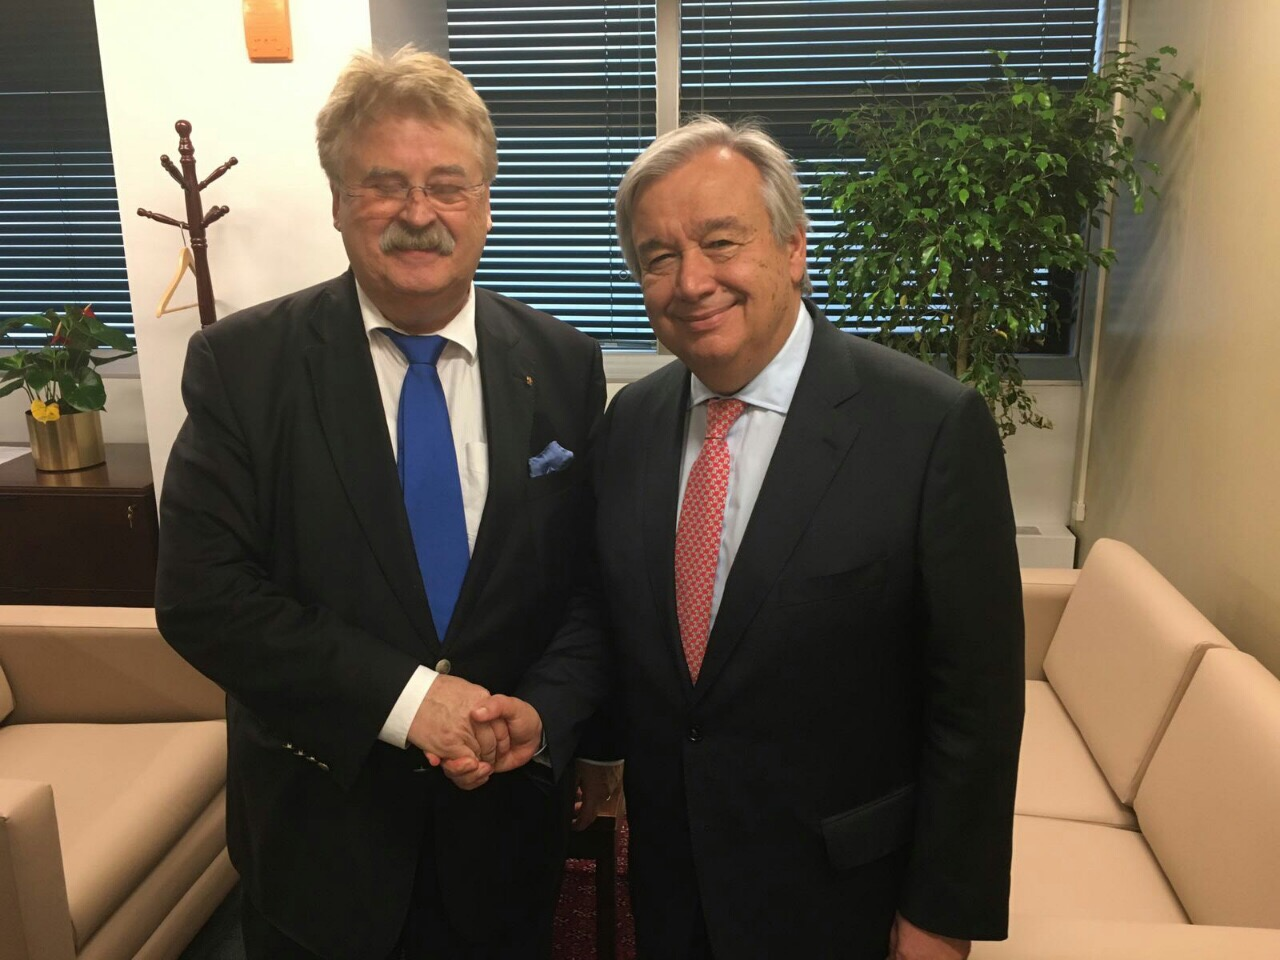 European Parliament Delegation to UNGA headed by AFET Committee Chair Elmar Brok